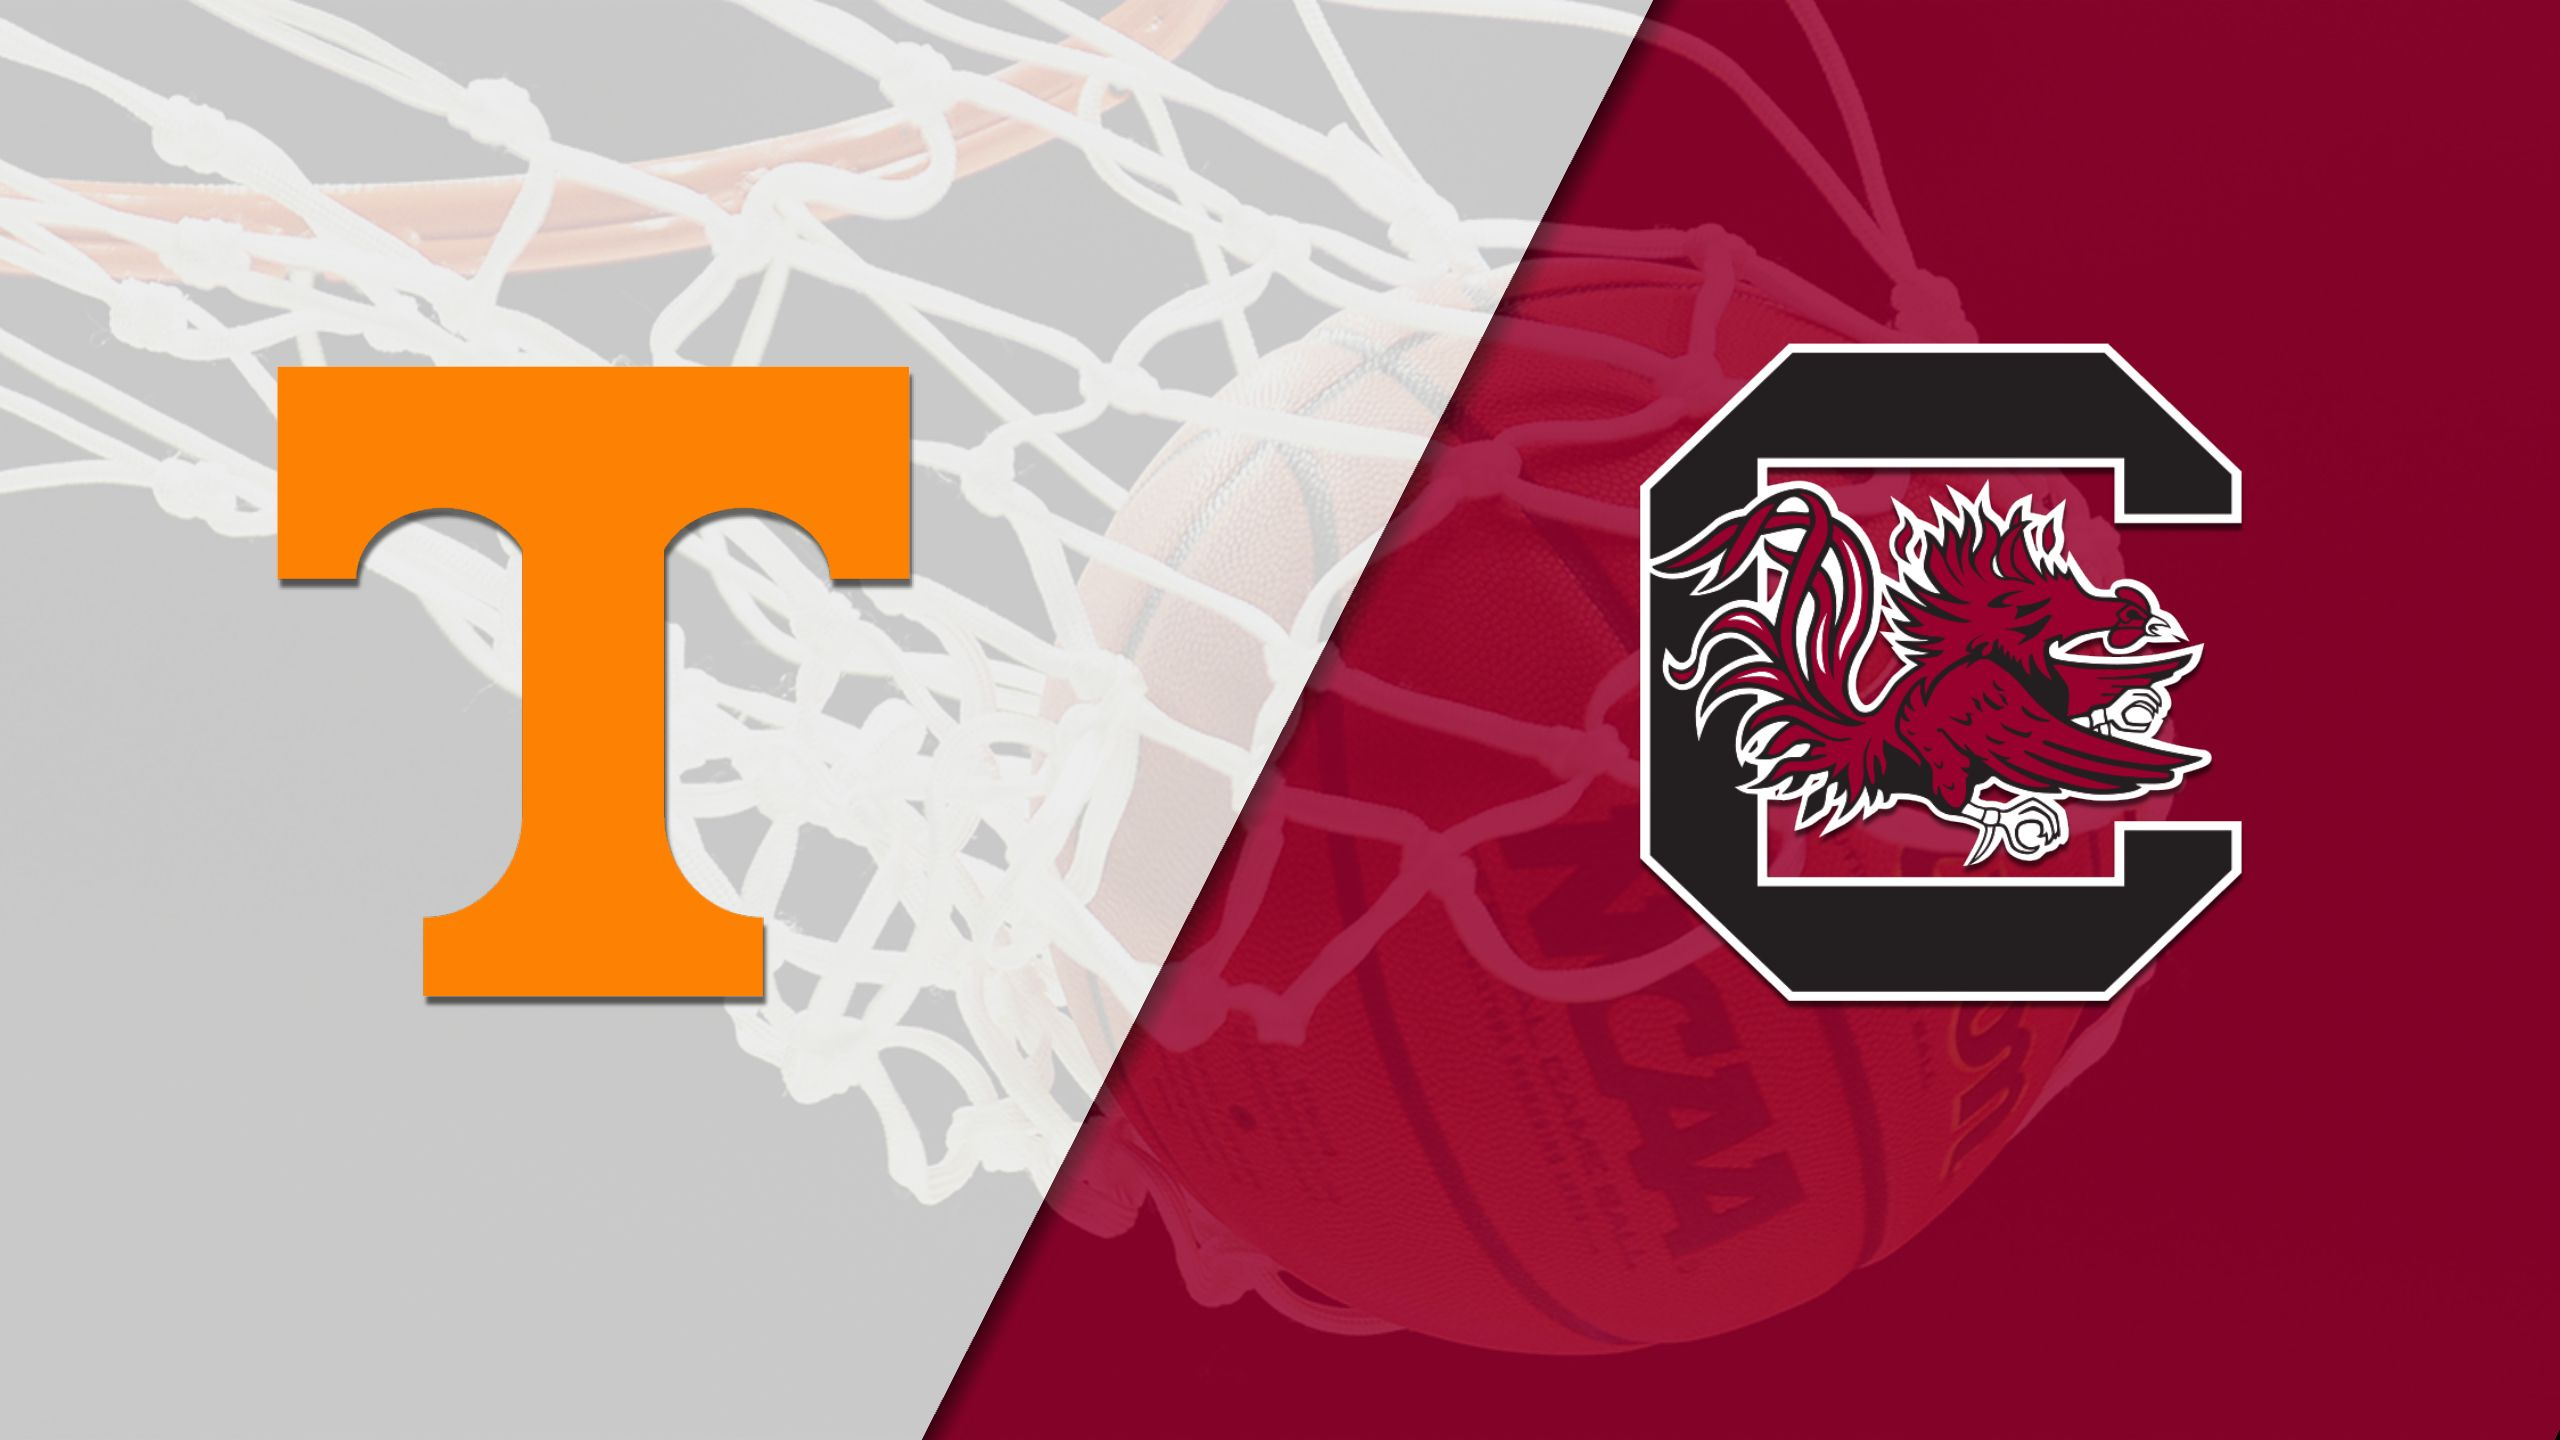 #21 Tennessee vs. South Carolina (M Basketball)